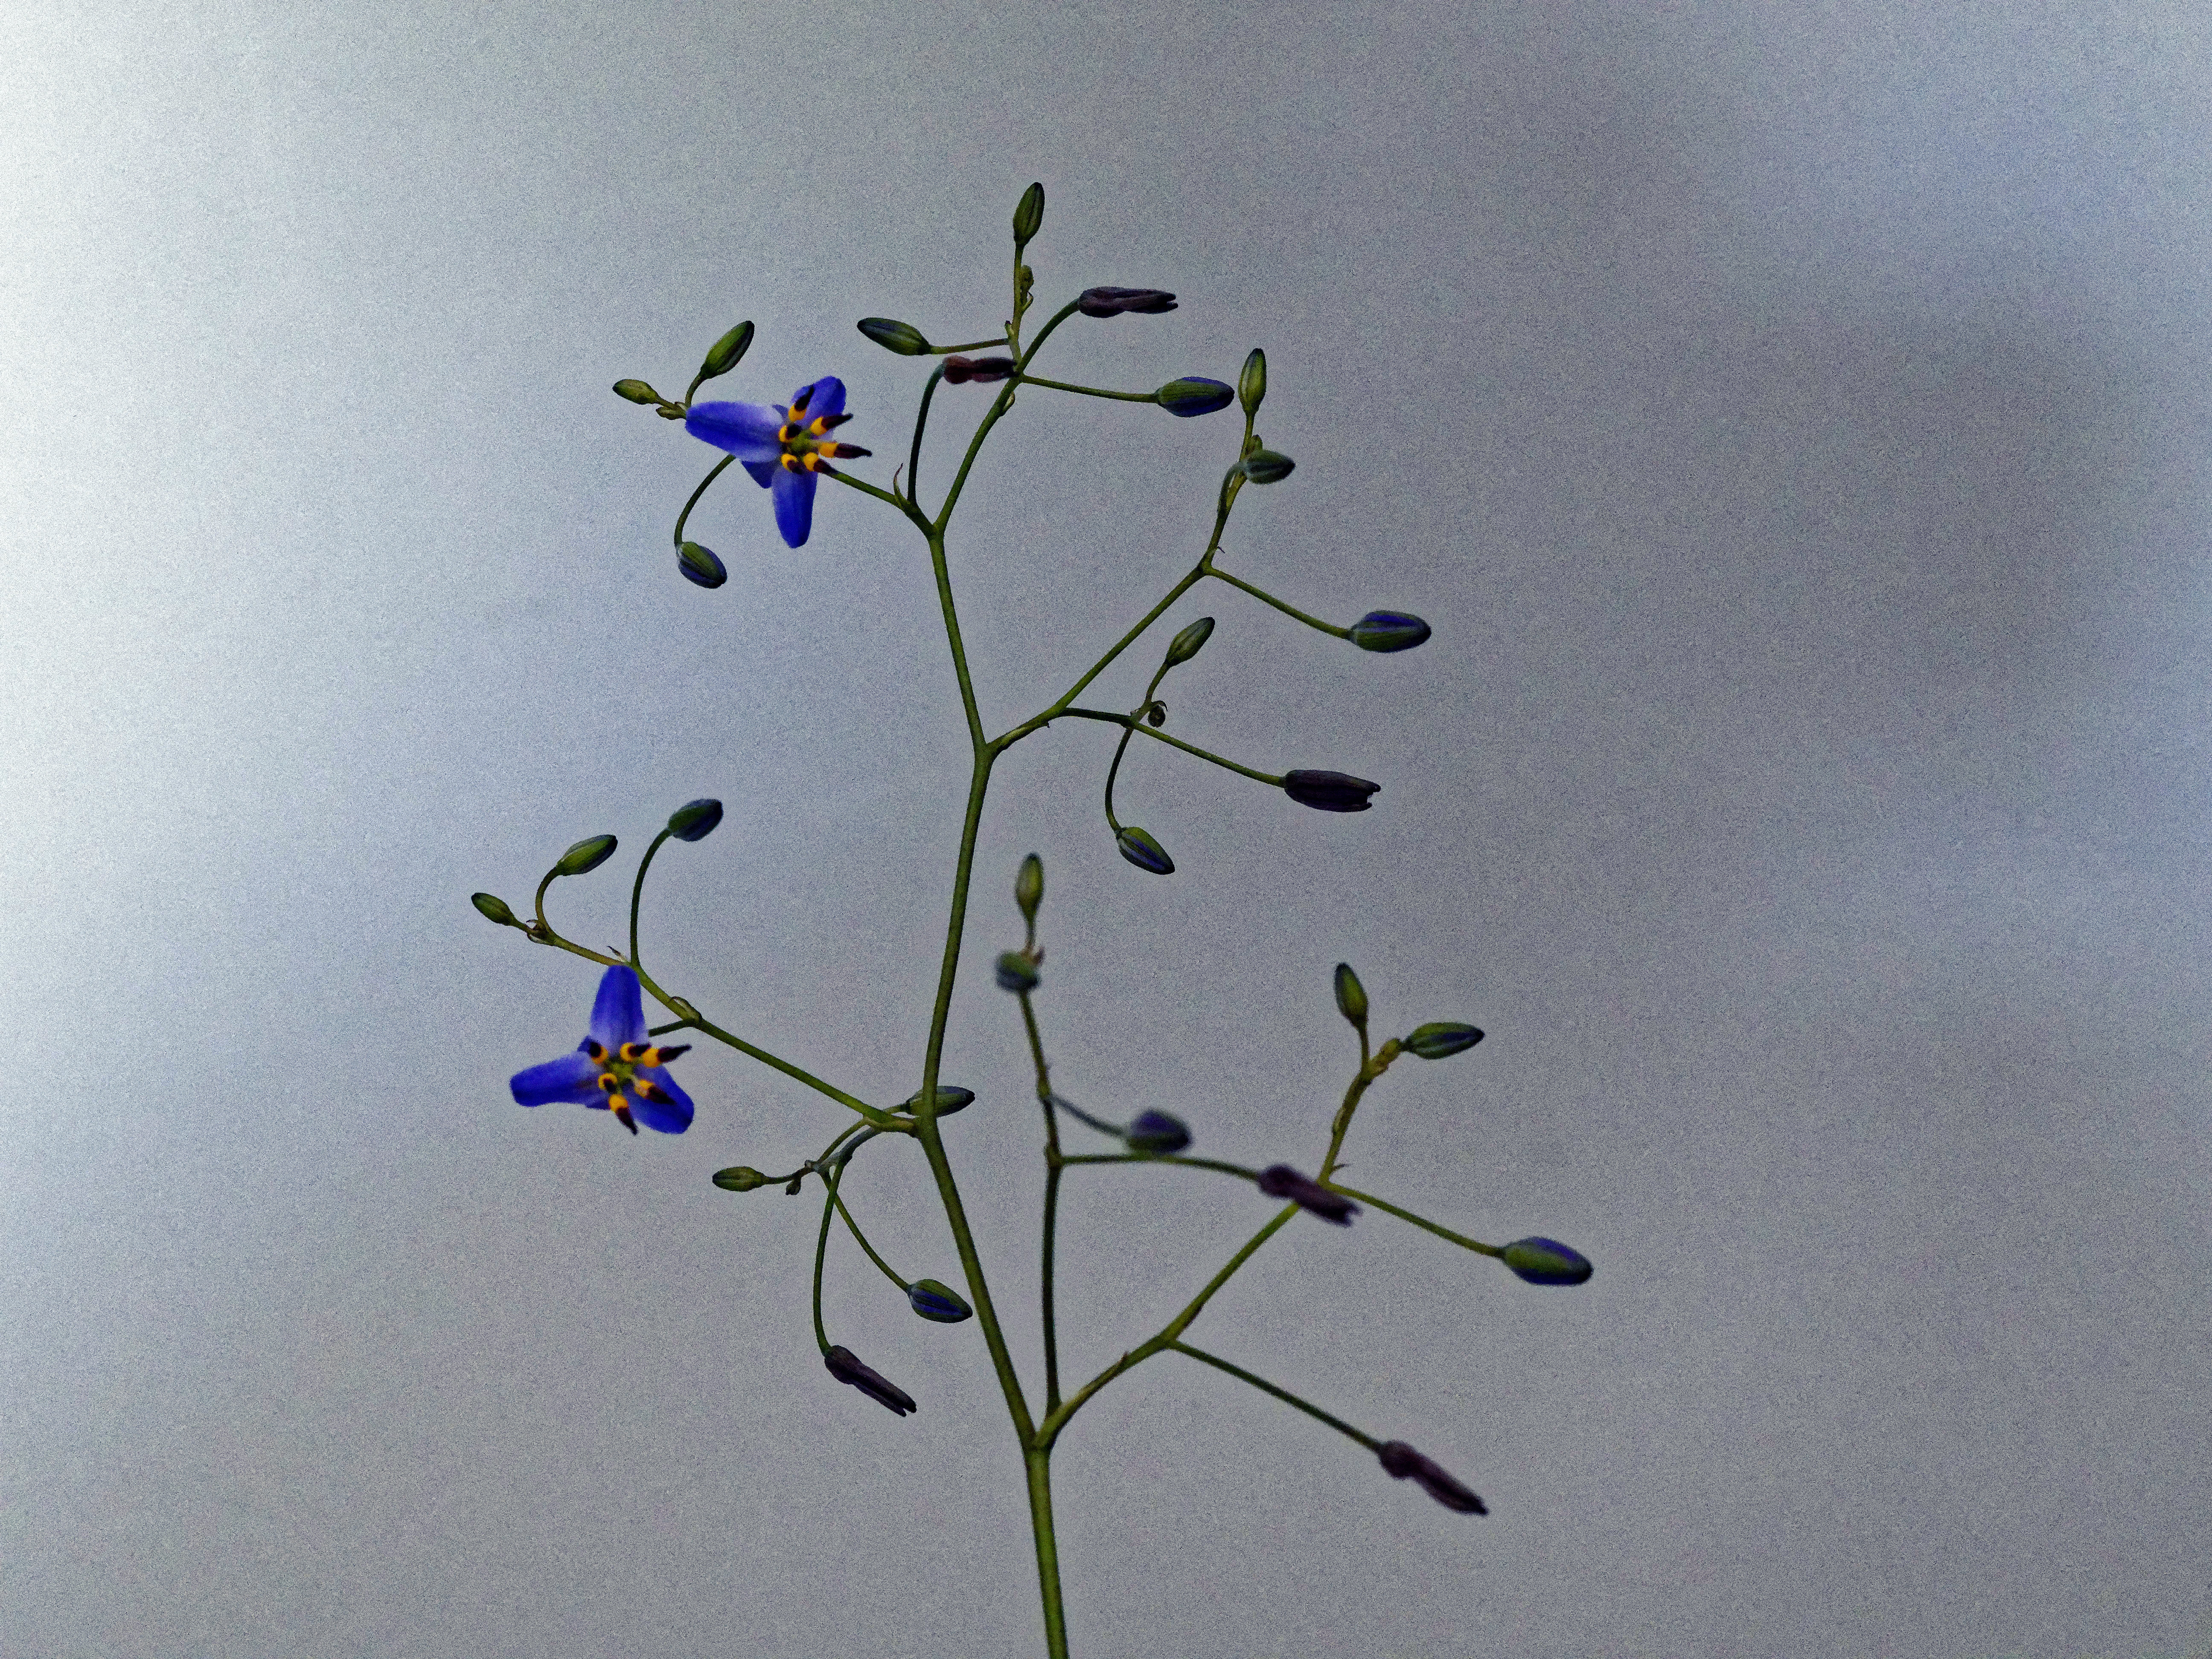 This should be Dianella-revoluta-2.jpeg.  Is it missing?